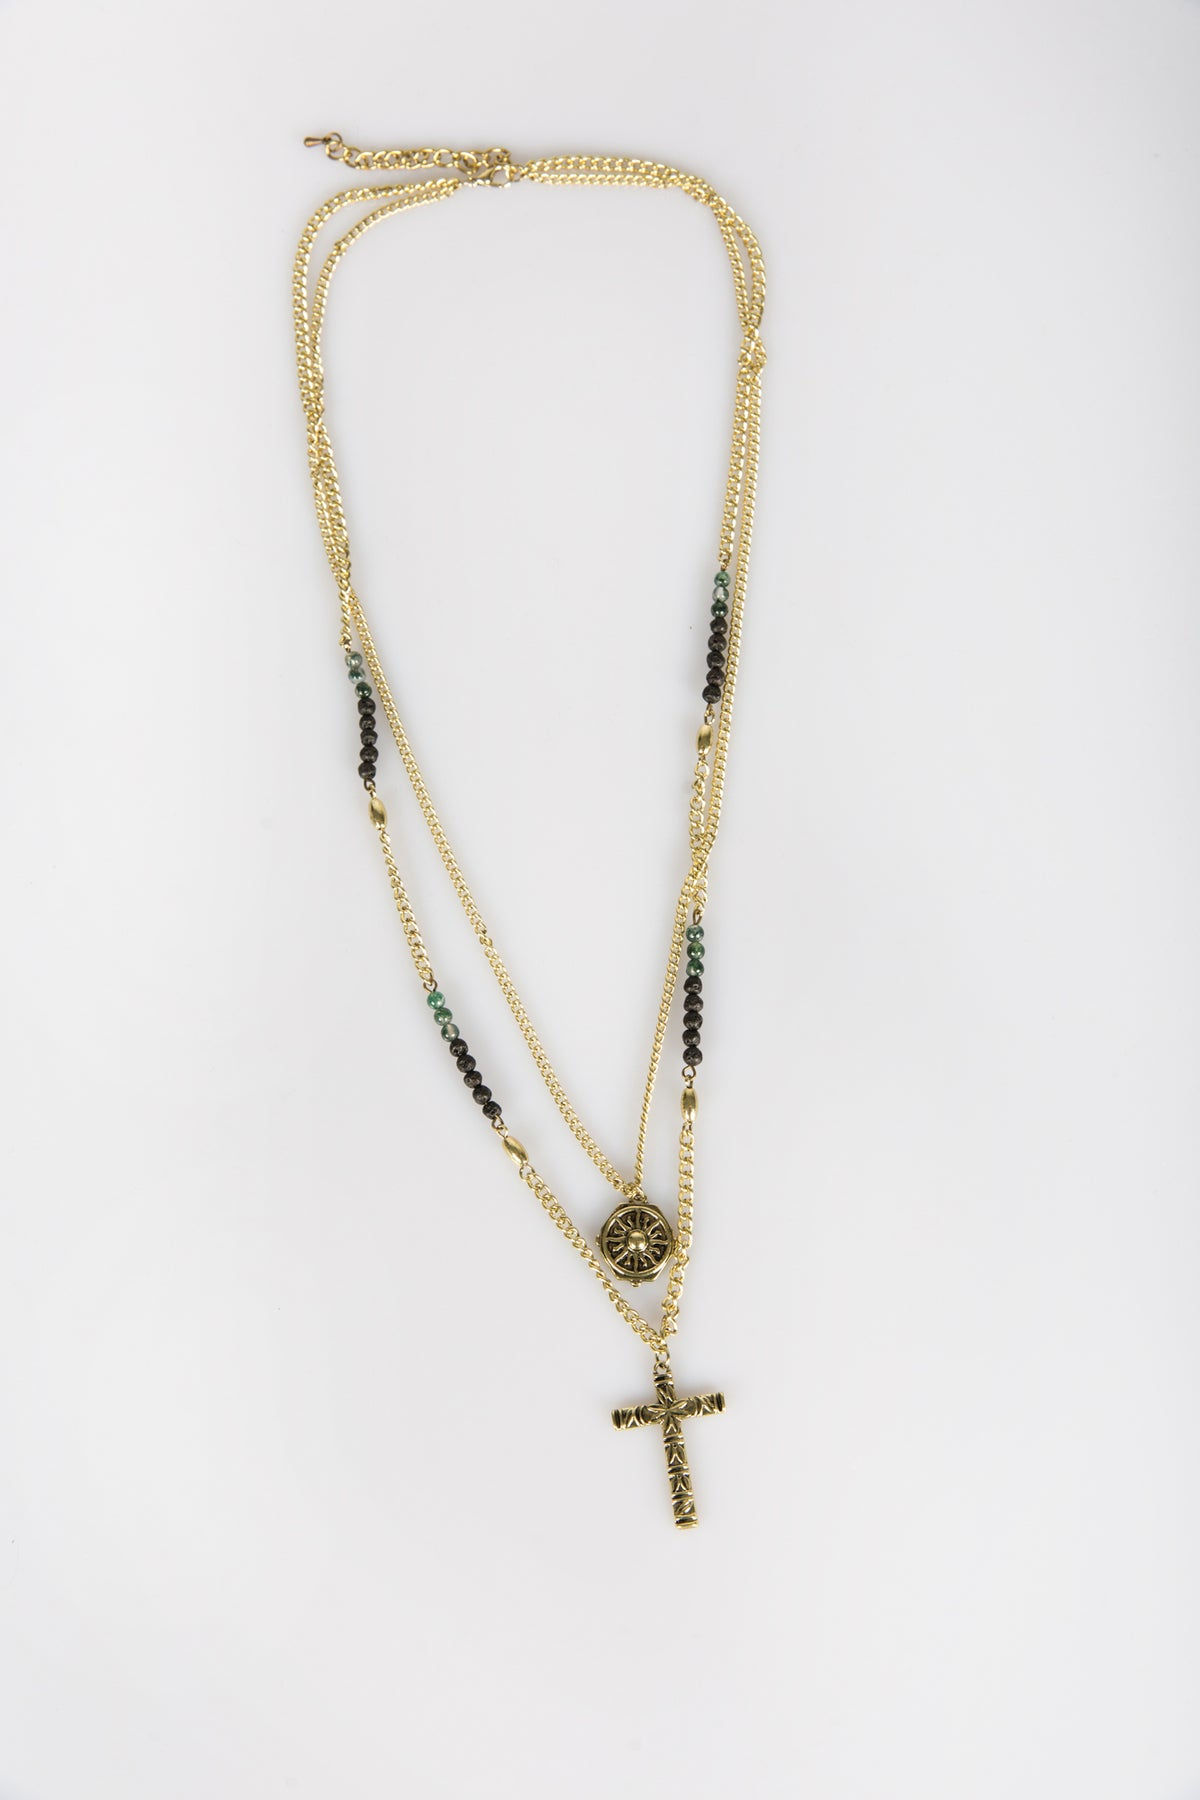 Nth Layered Cross Pendant Vintage Gold